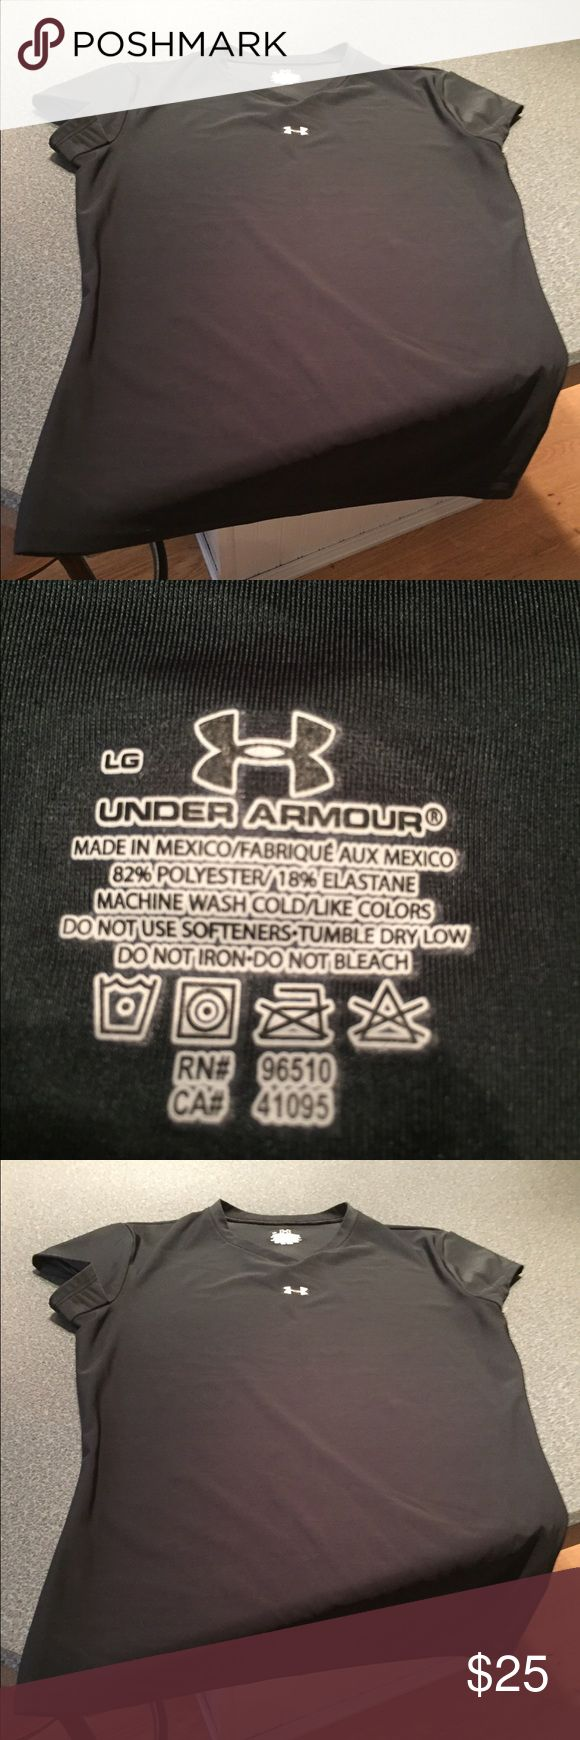 Black under armor compression T-shirt size large Large under armor shorts sleeve 82% polyester 18% a elastase never worn Under Armour Tops Tees - Short Sleeve